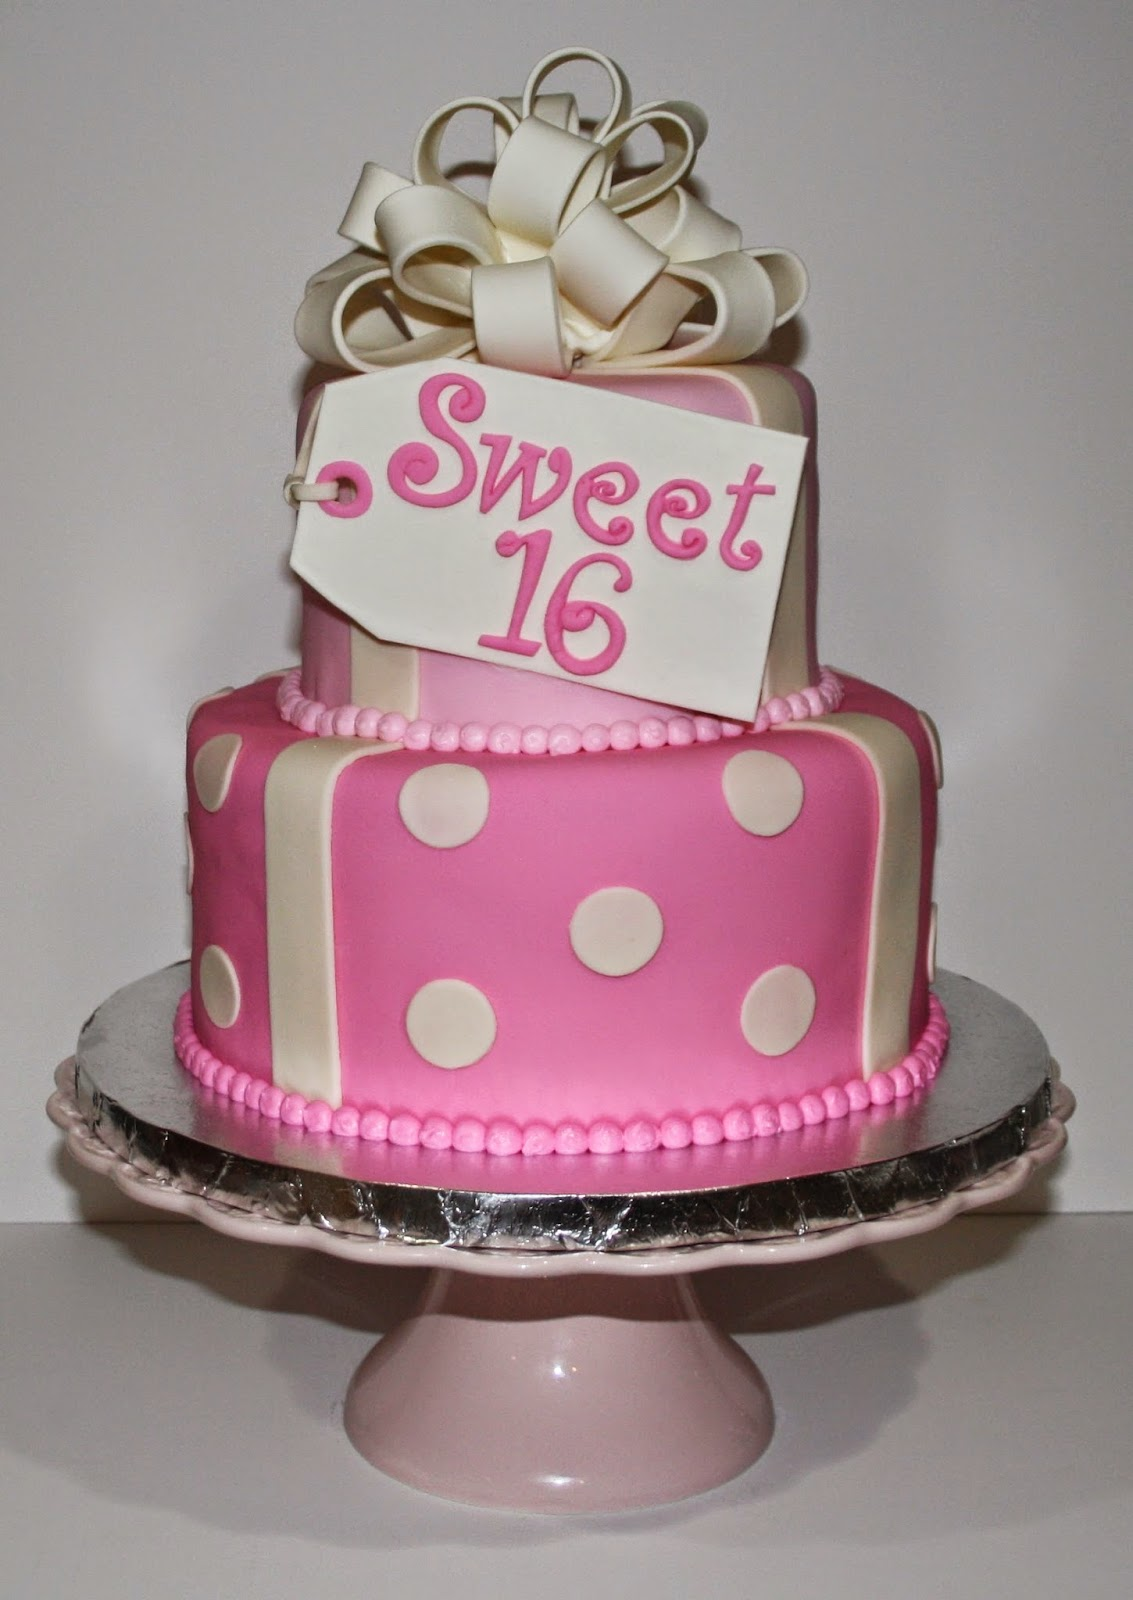 Sweet 16 Cake - CakeCentral.com |Sweet 19 Birthday Cakes